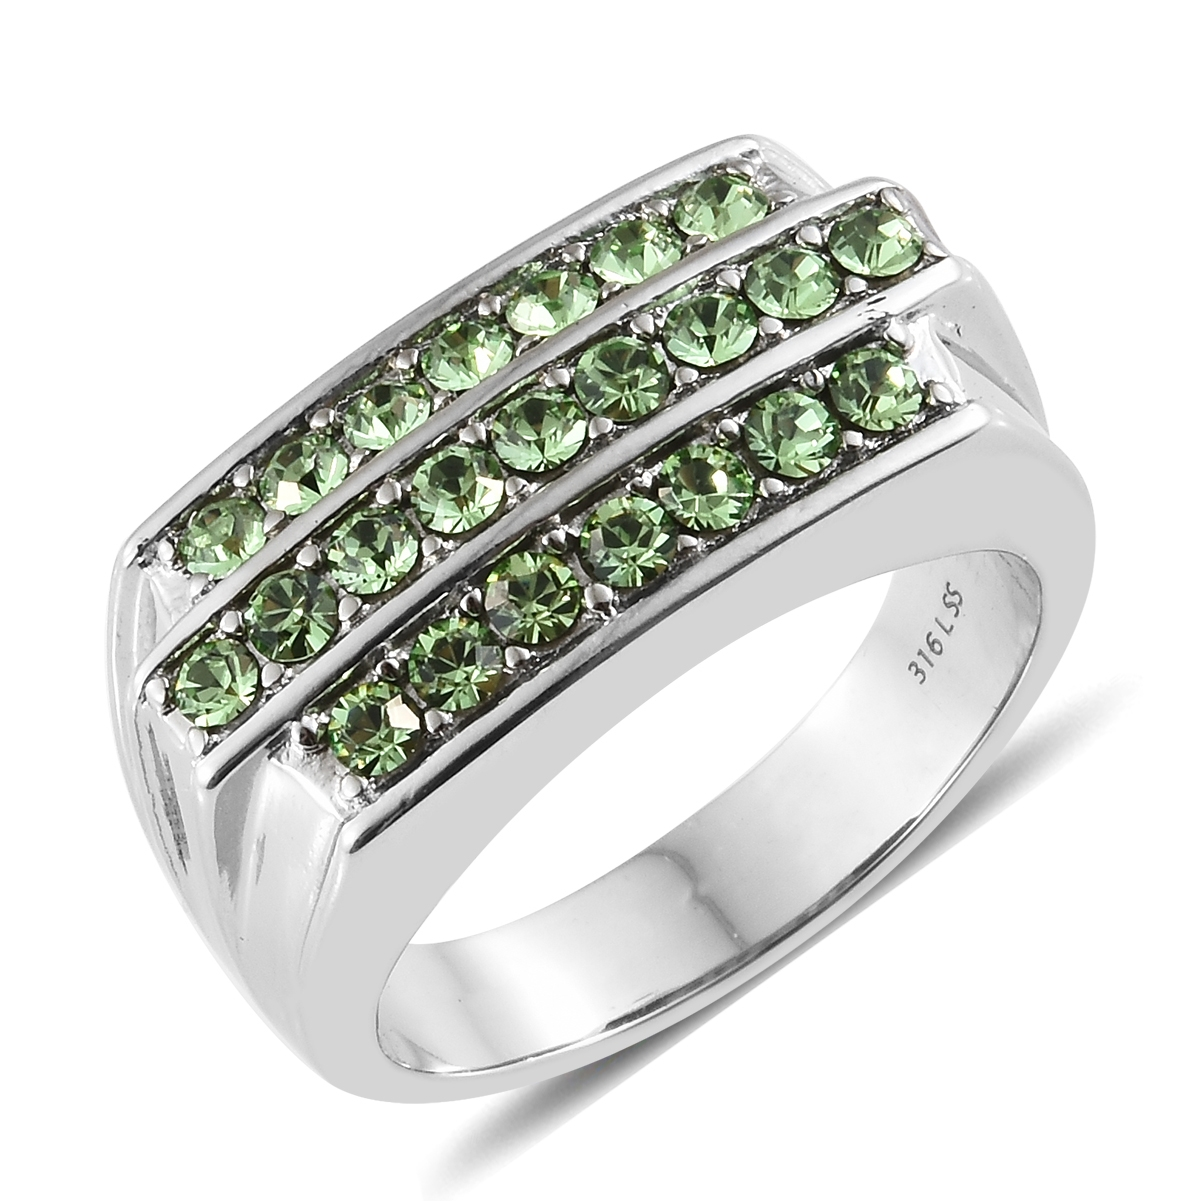 1d20125cd73e Stainless Steel Men s Ring (Size 12.0) Made with SWAROVSKI Peridot Crystal